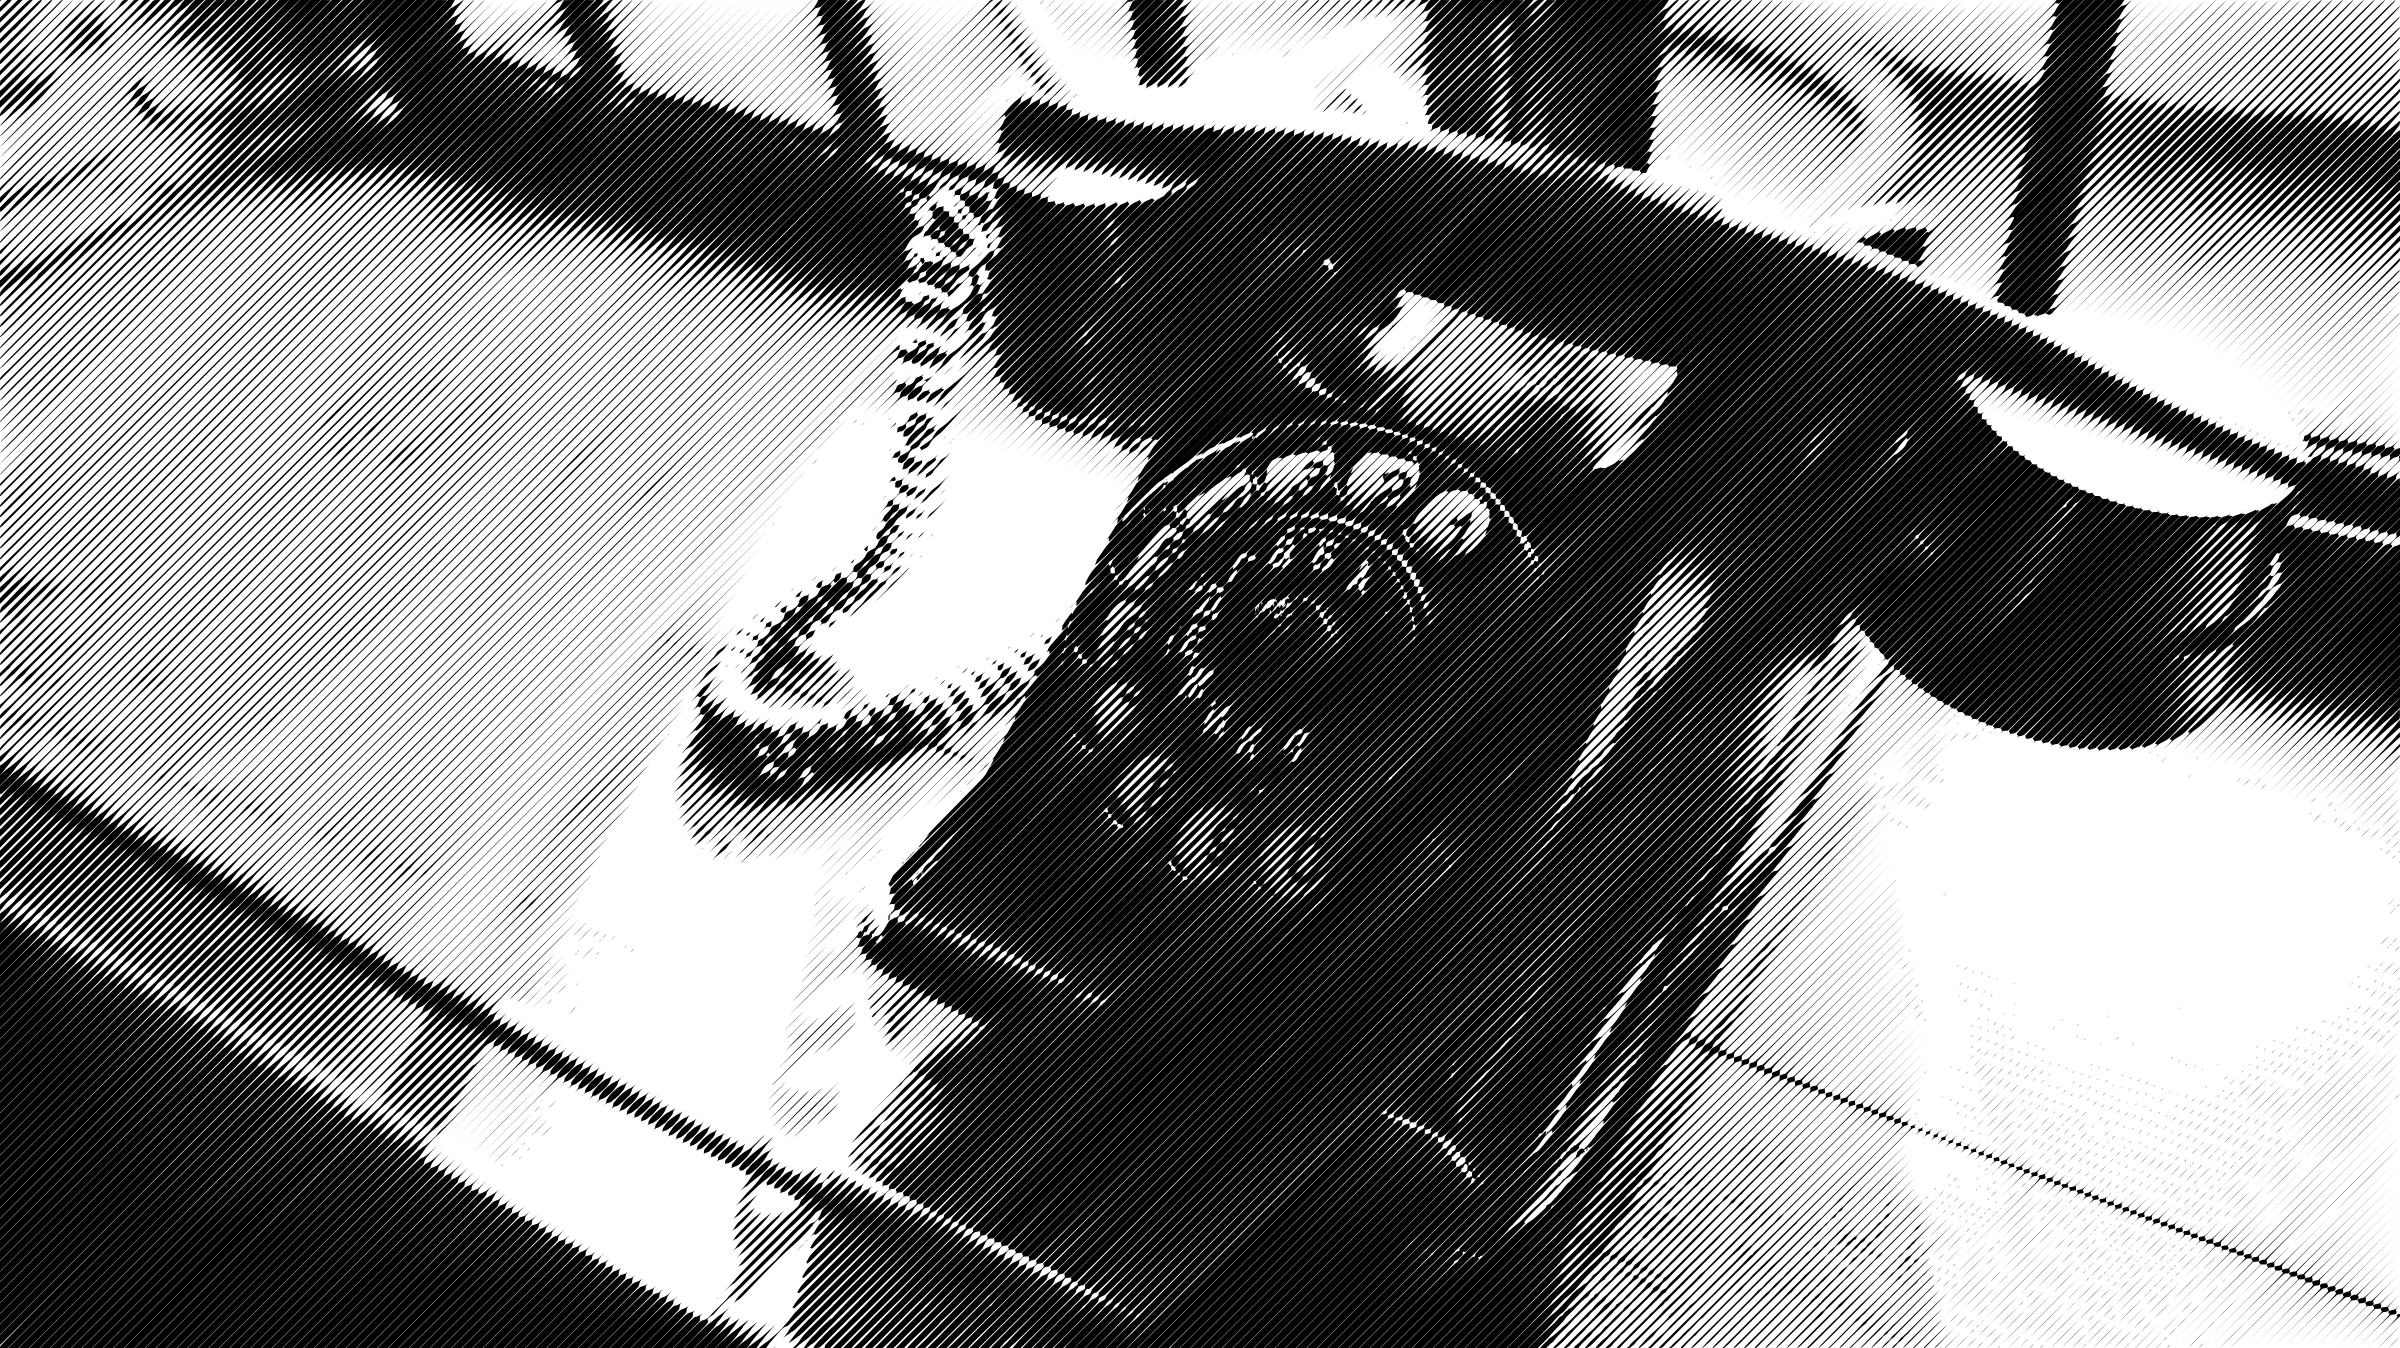 halftone telephone by Lazur URH